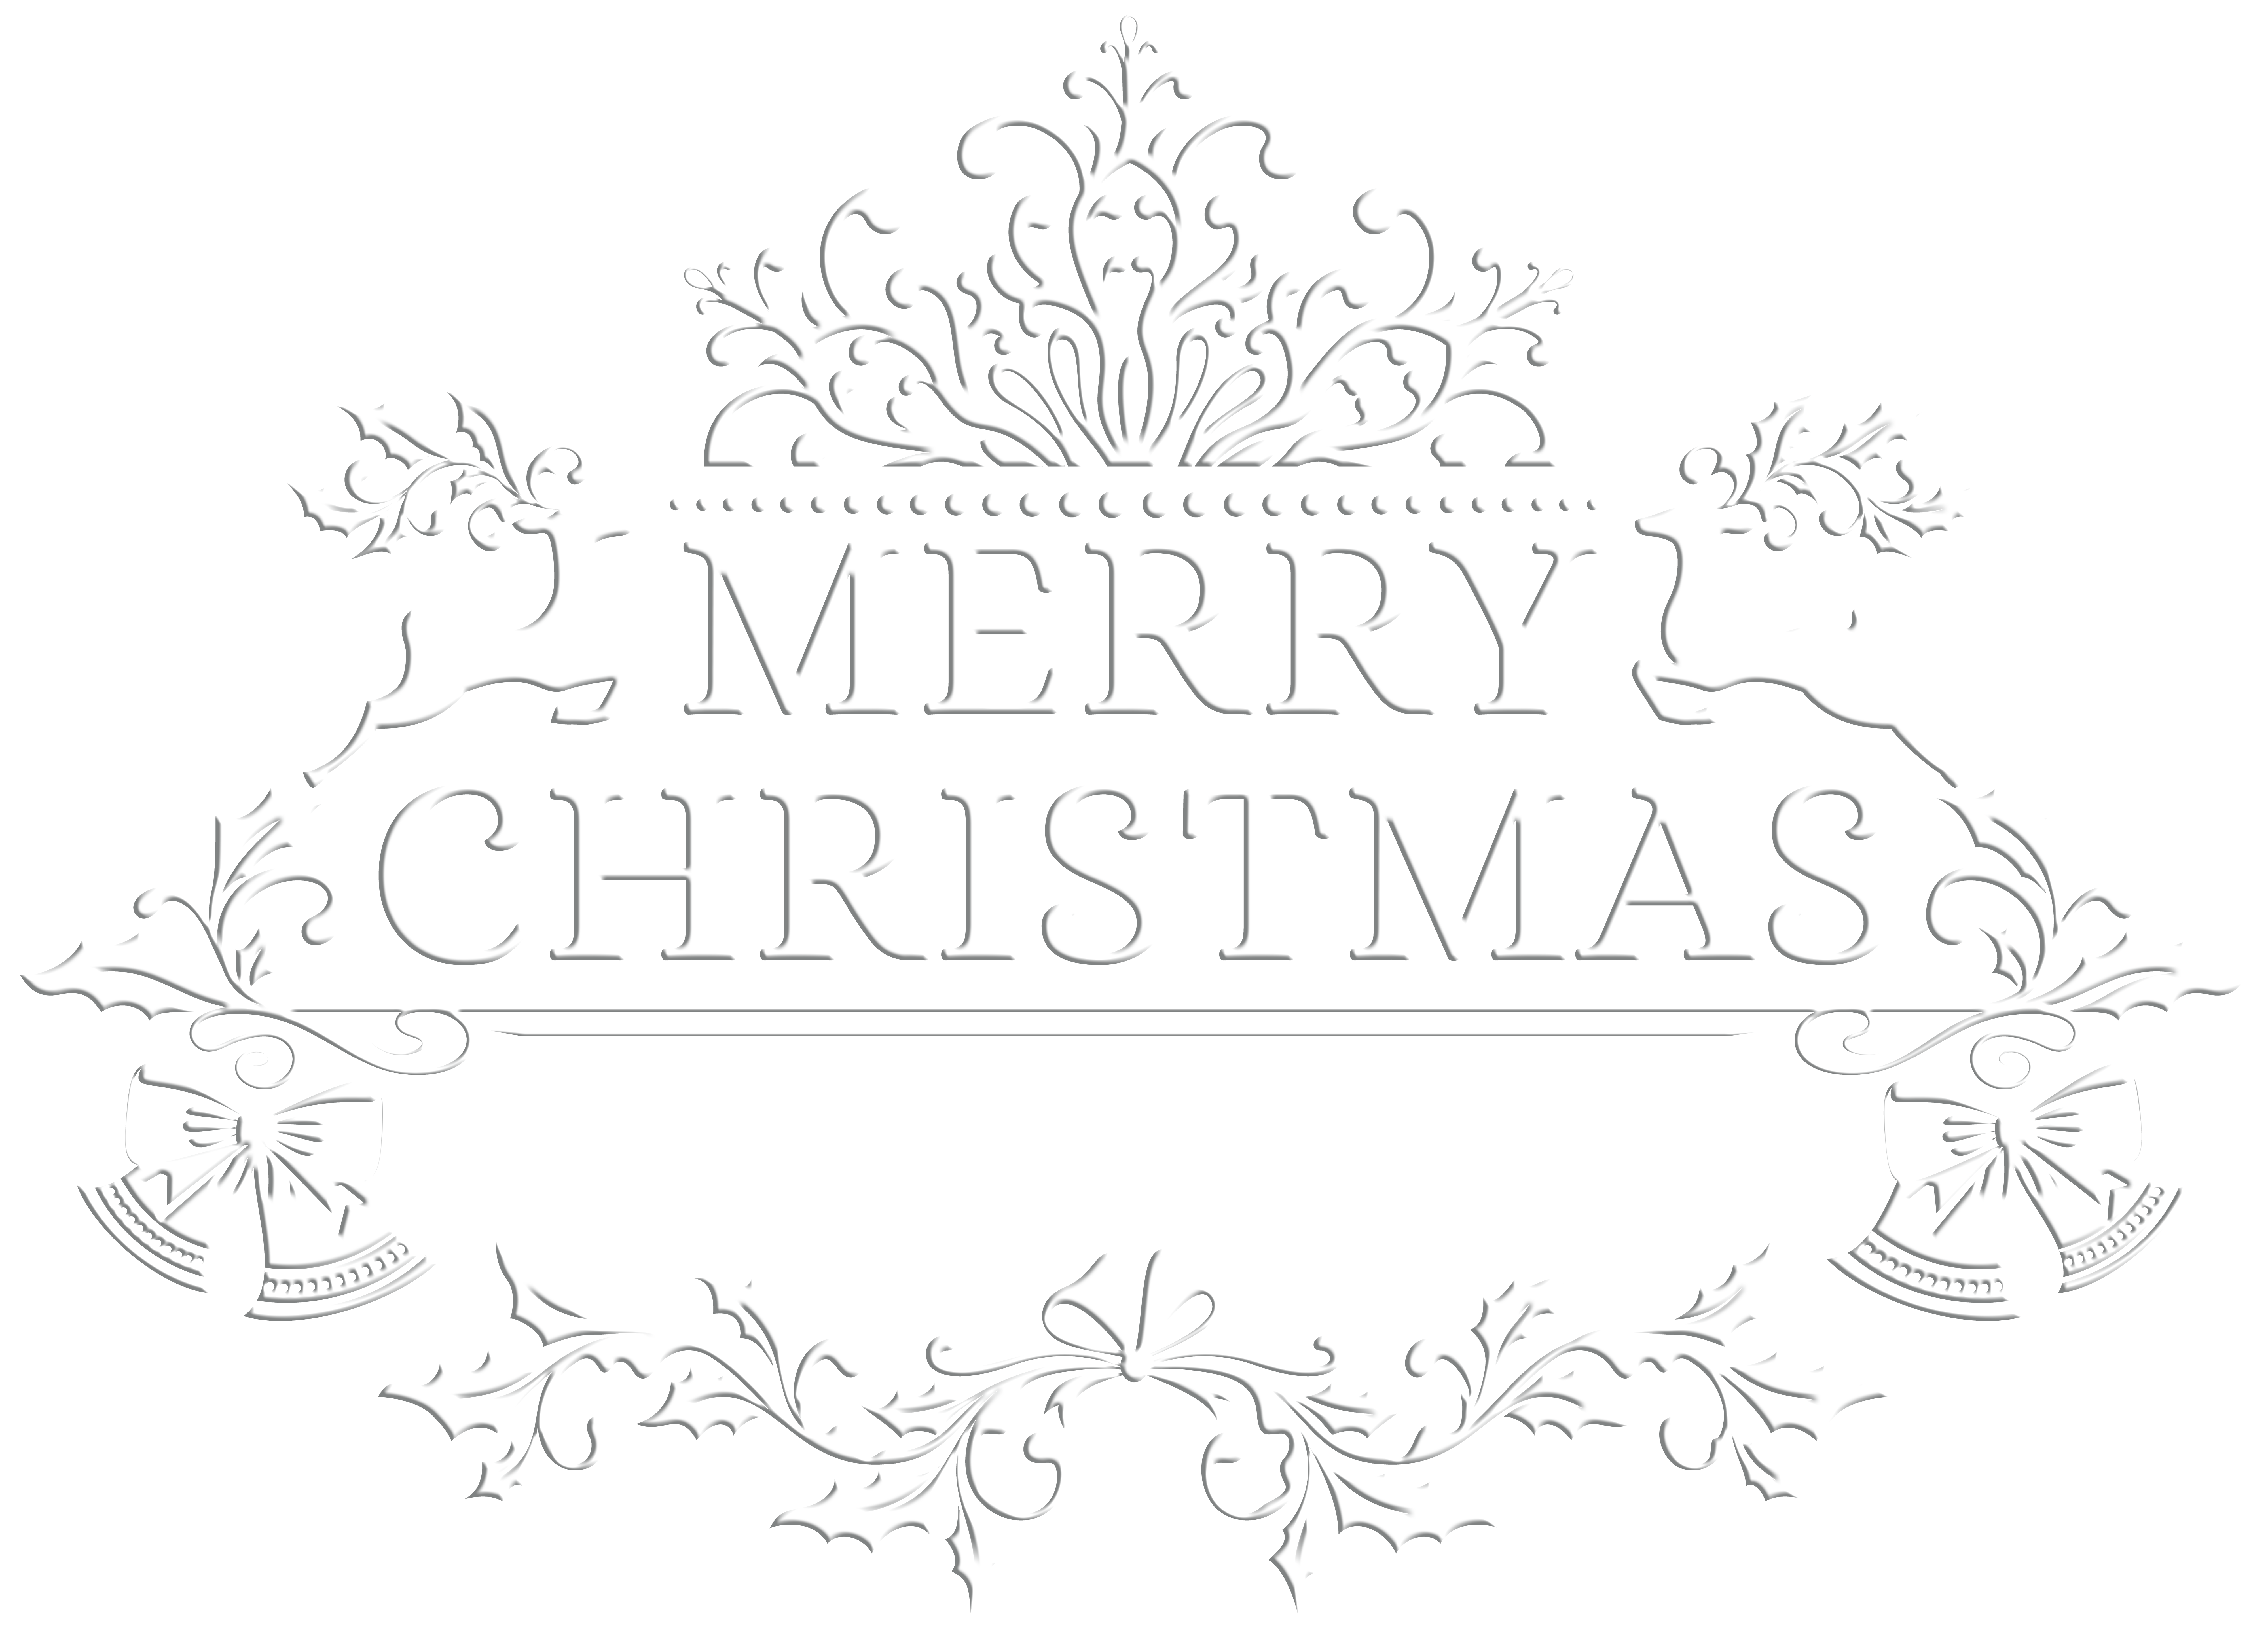 Merry Christmas White Transparent PNG Clip Art Image.